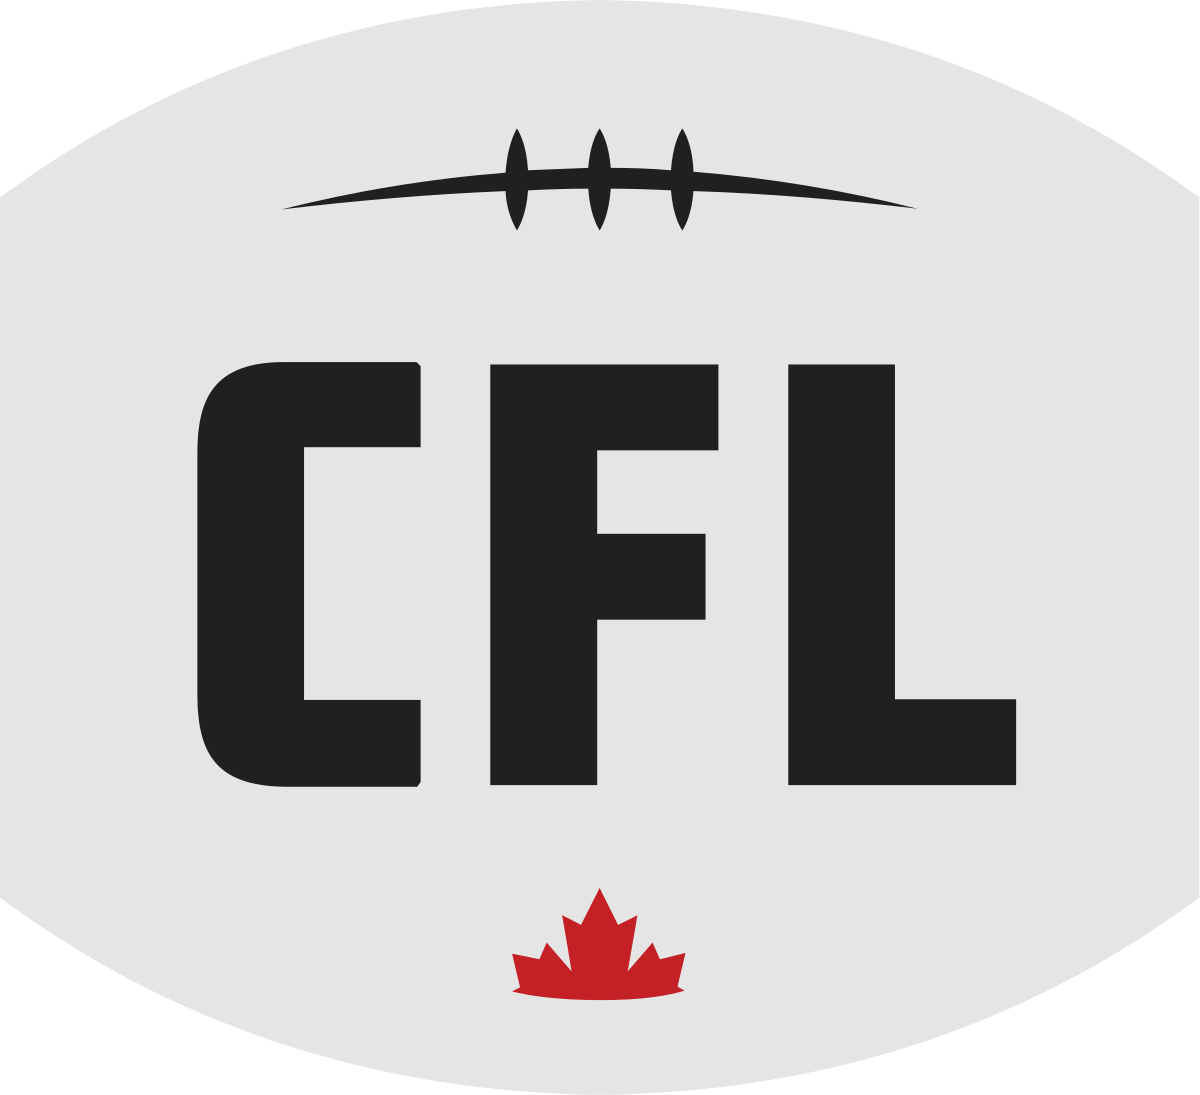 Clipart public finance management act 2016 graphic transparent Canadian Football League - Wikipedia graphic transparent